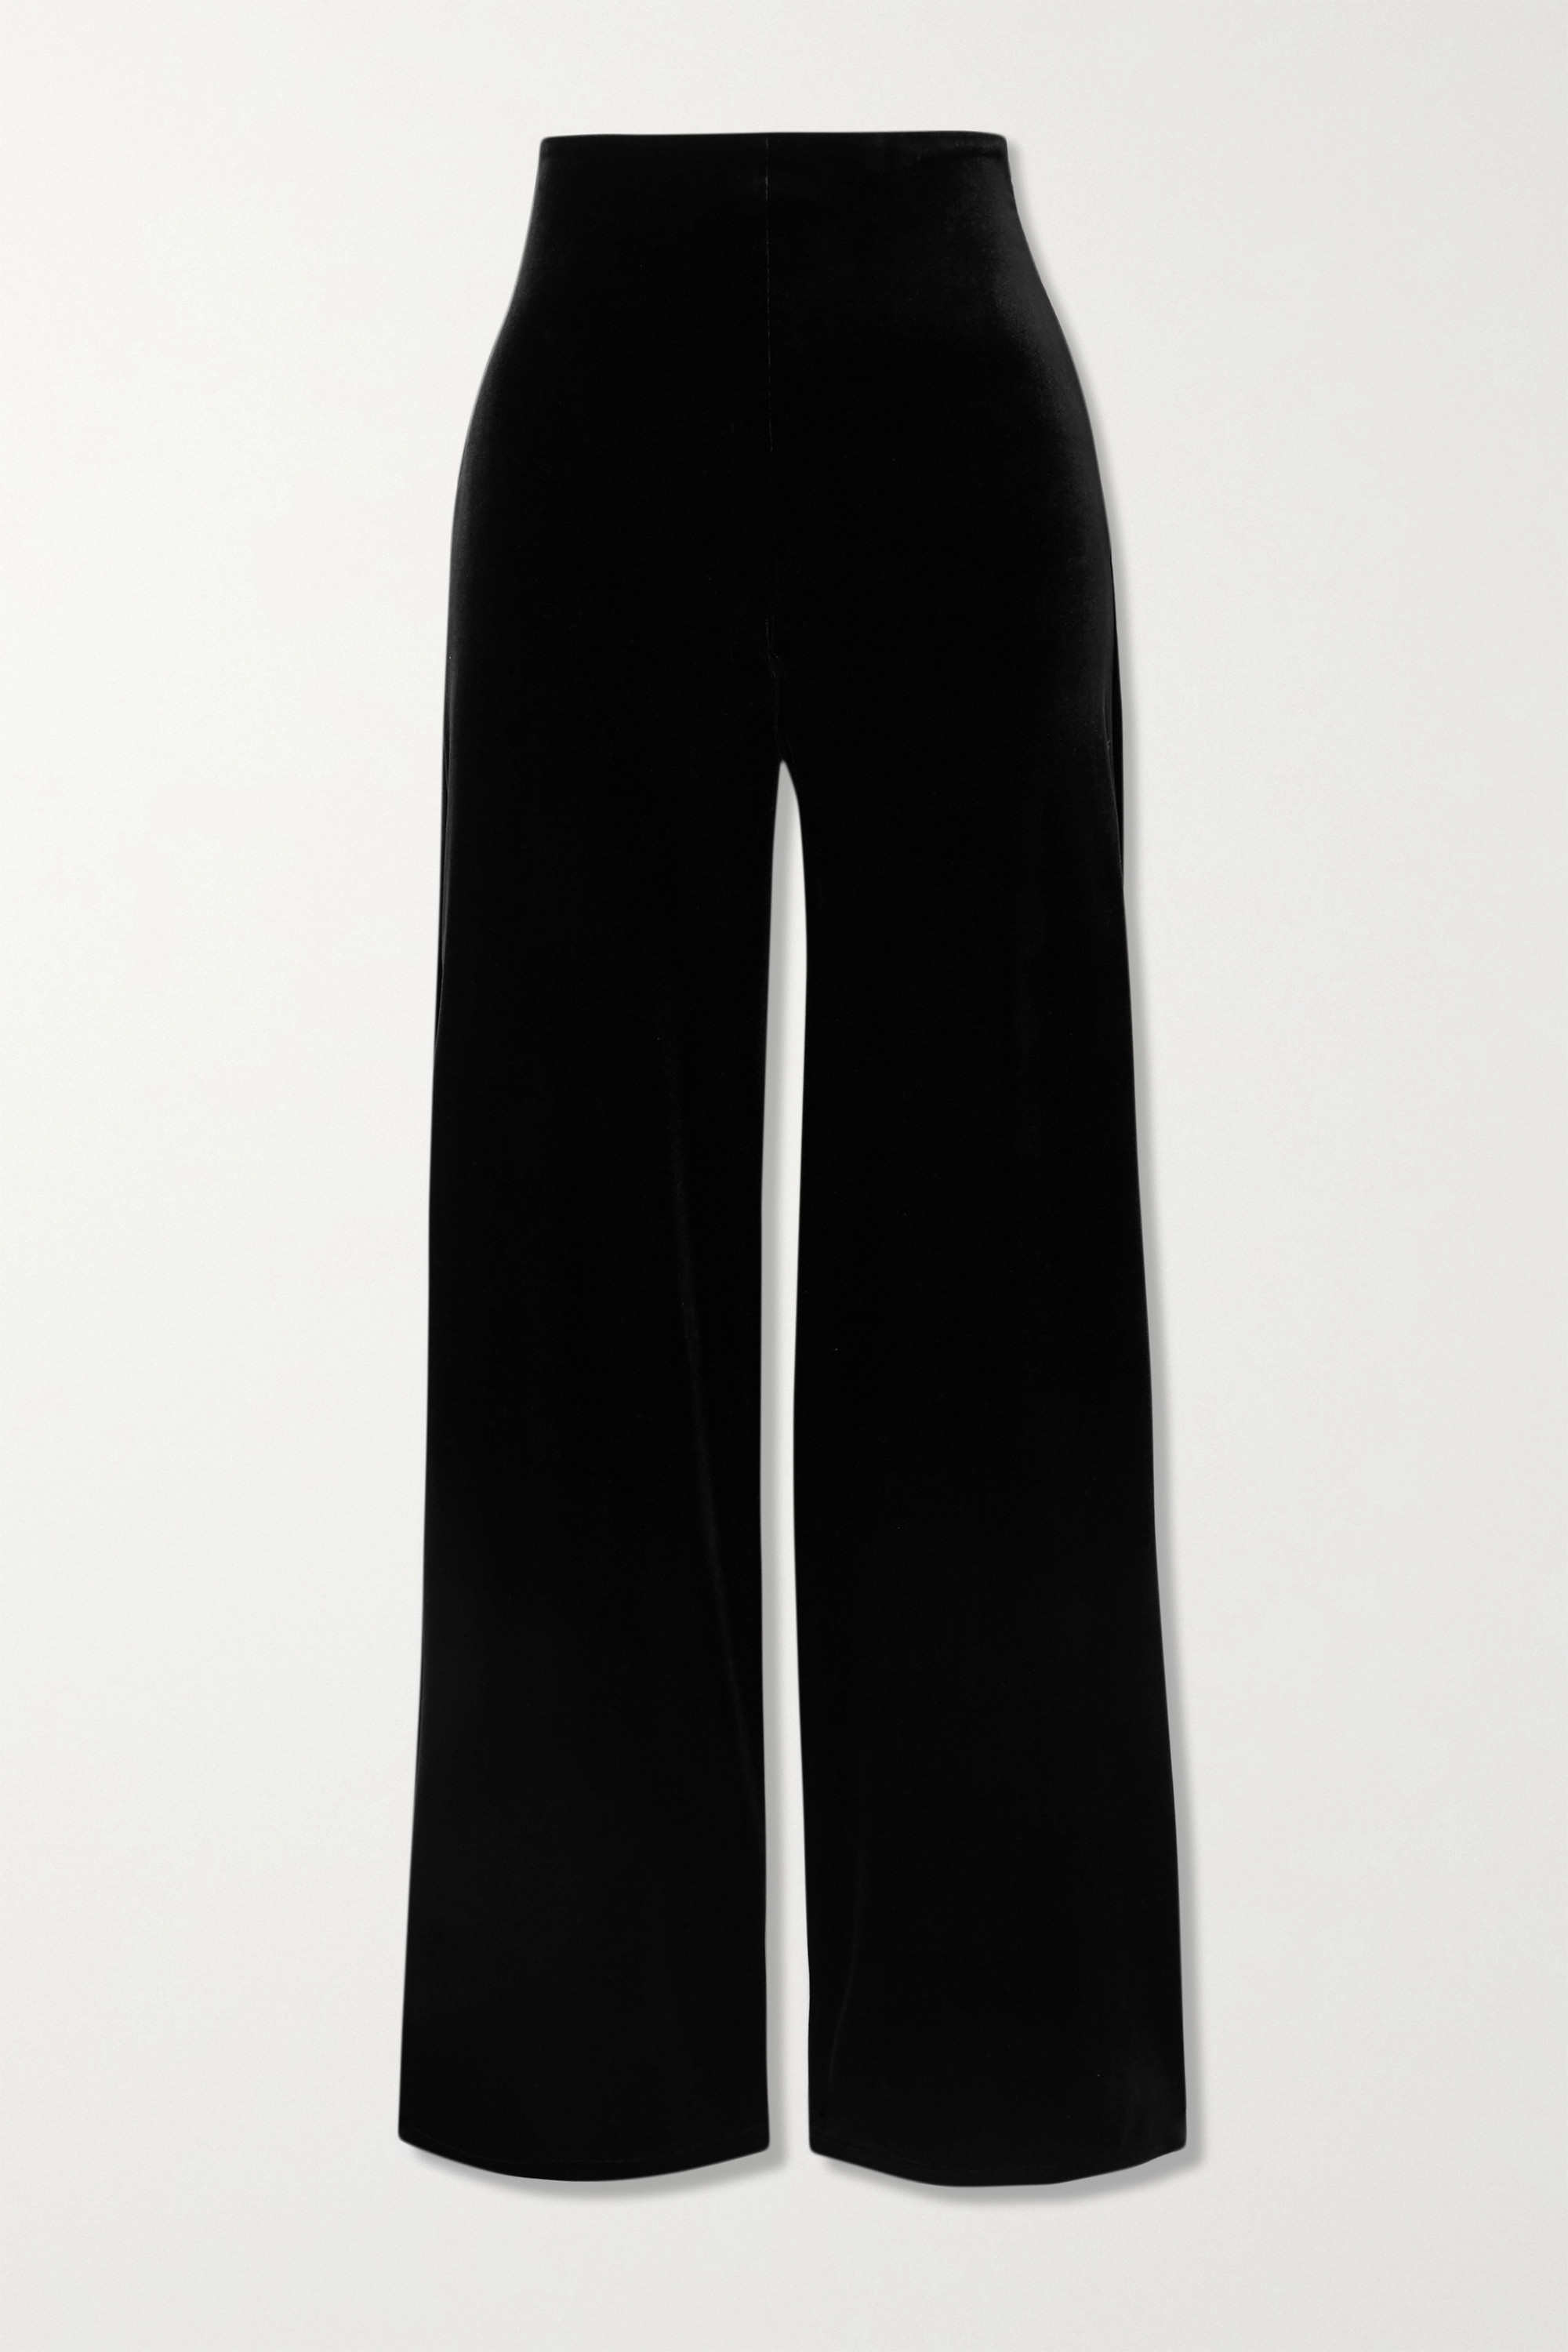 Commando STRETCH-VELVET WIDE-LEG PANTS